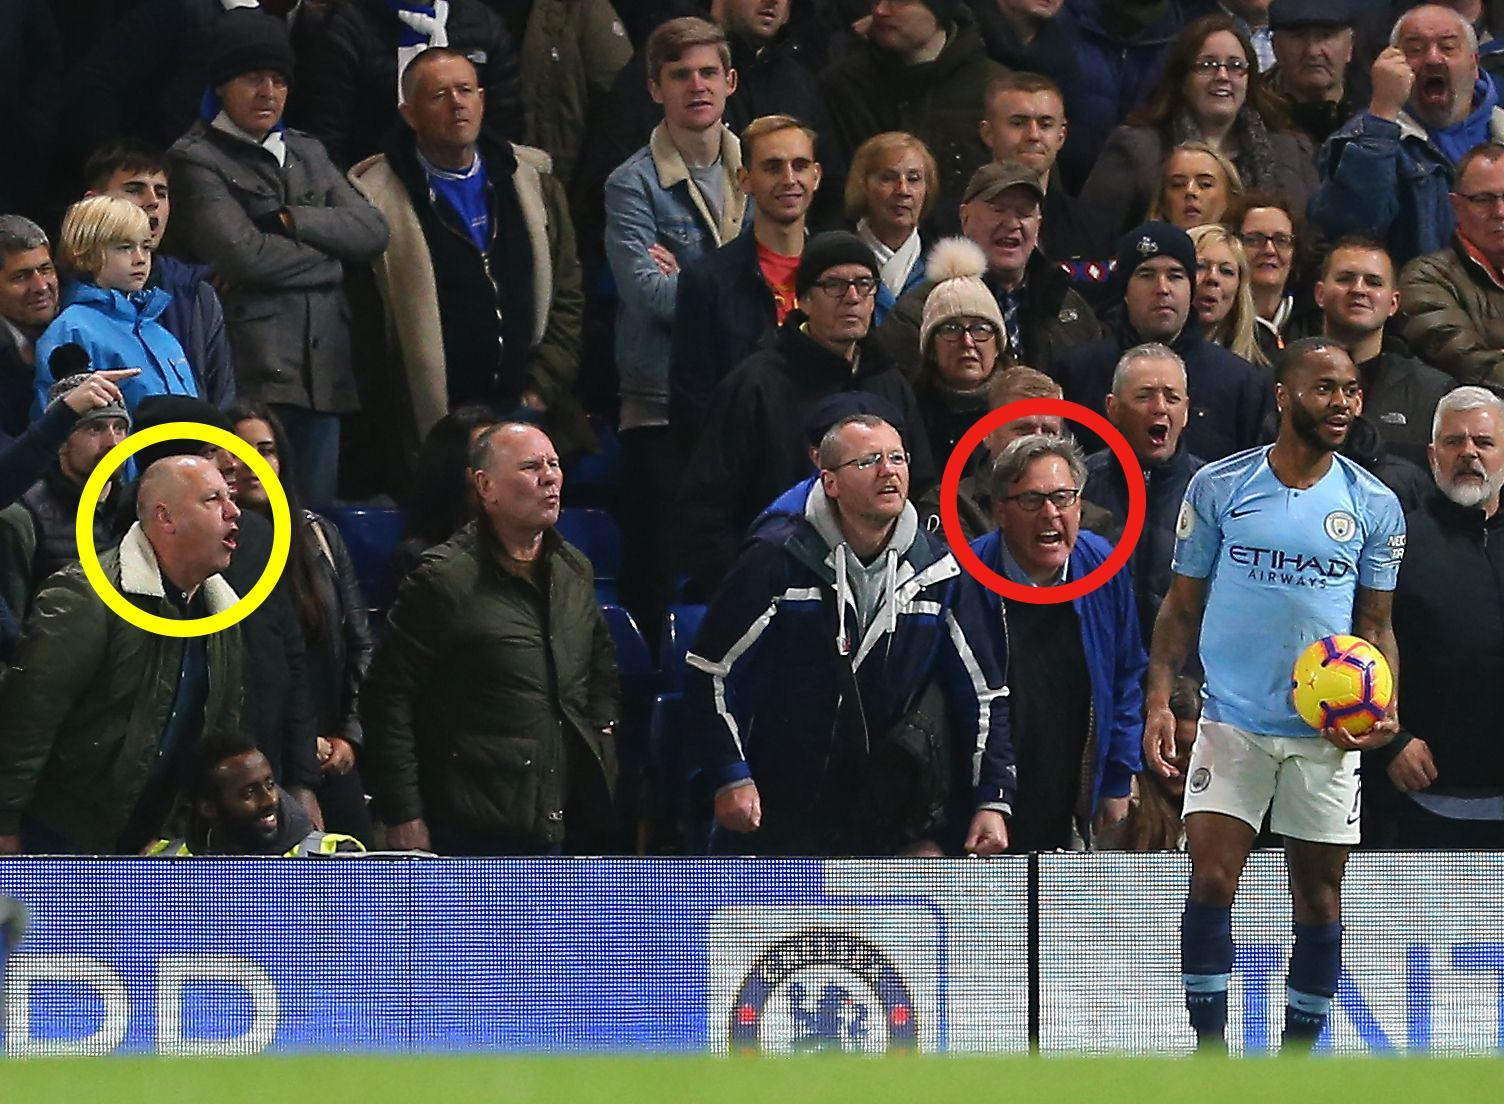 Chelsea fan says SORRY after being filmed hurling insults at Raheem Sterling and denies hearing racist abuse, claiming he called him an 'embarrassment to England'